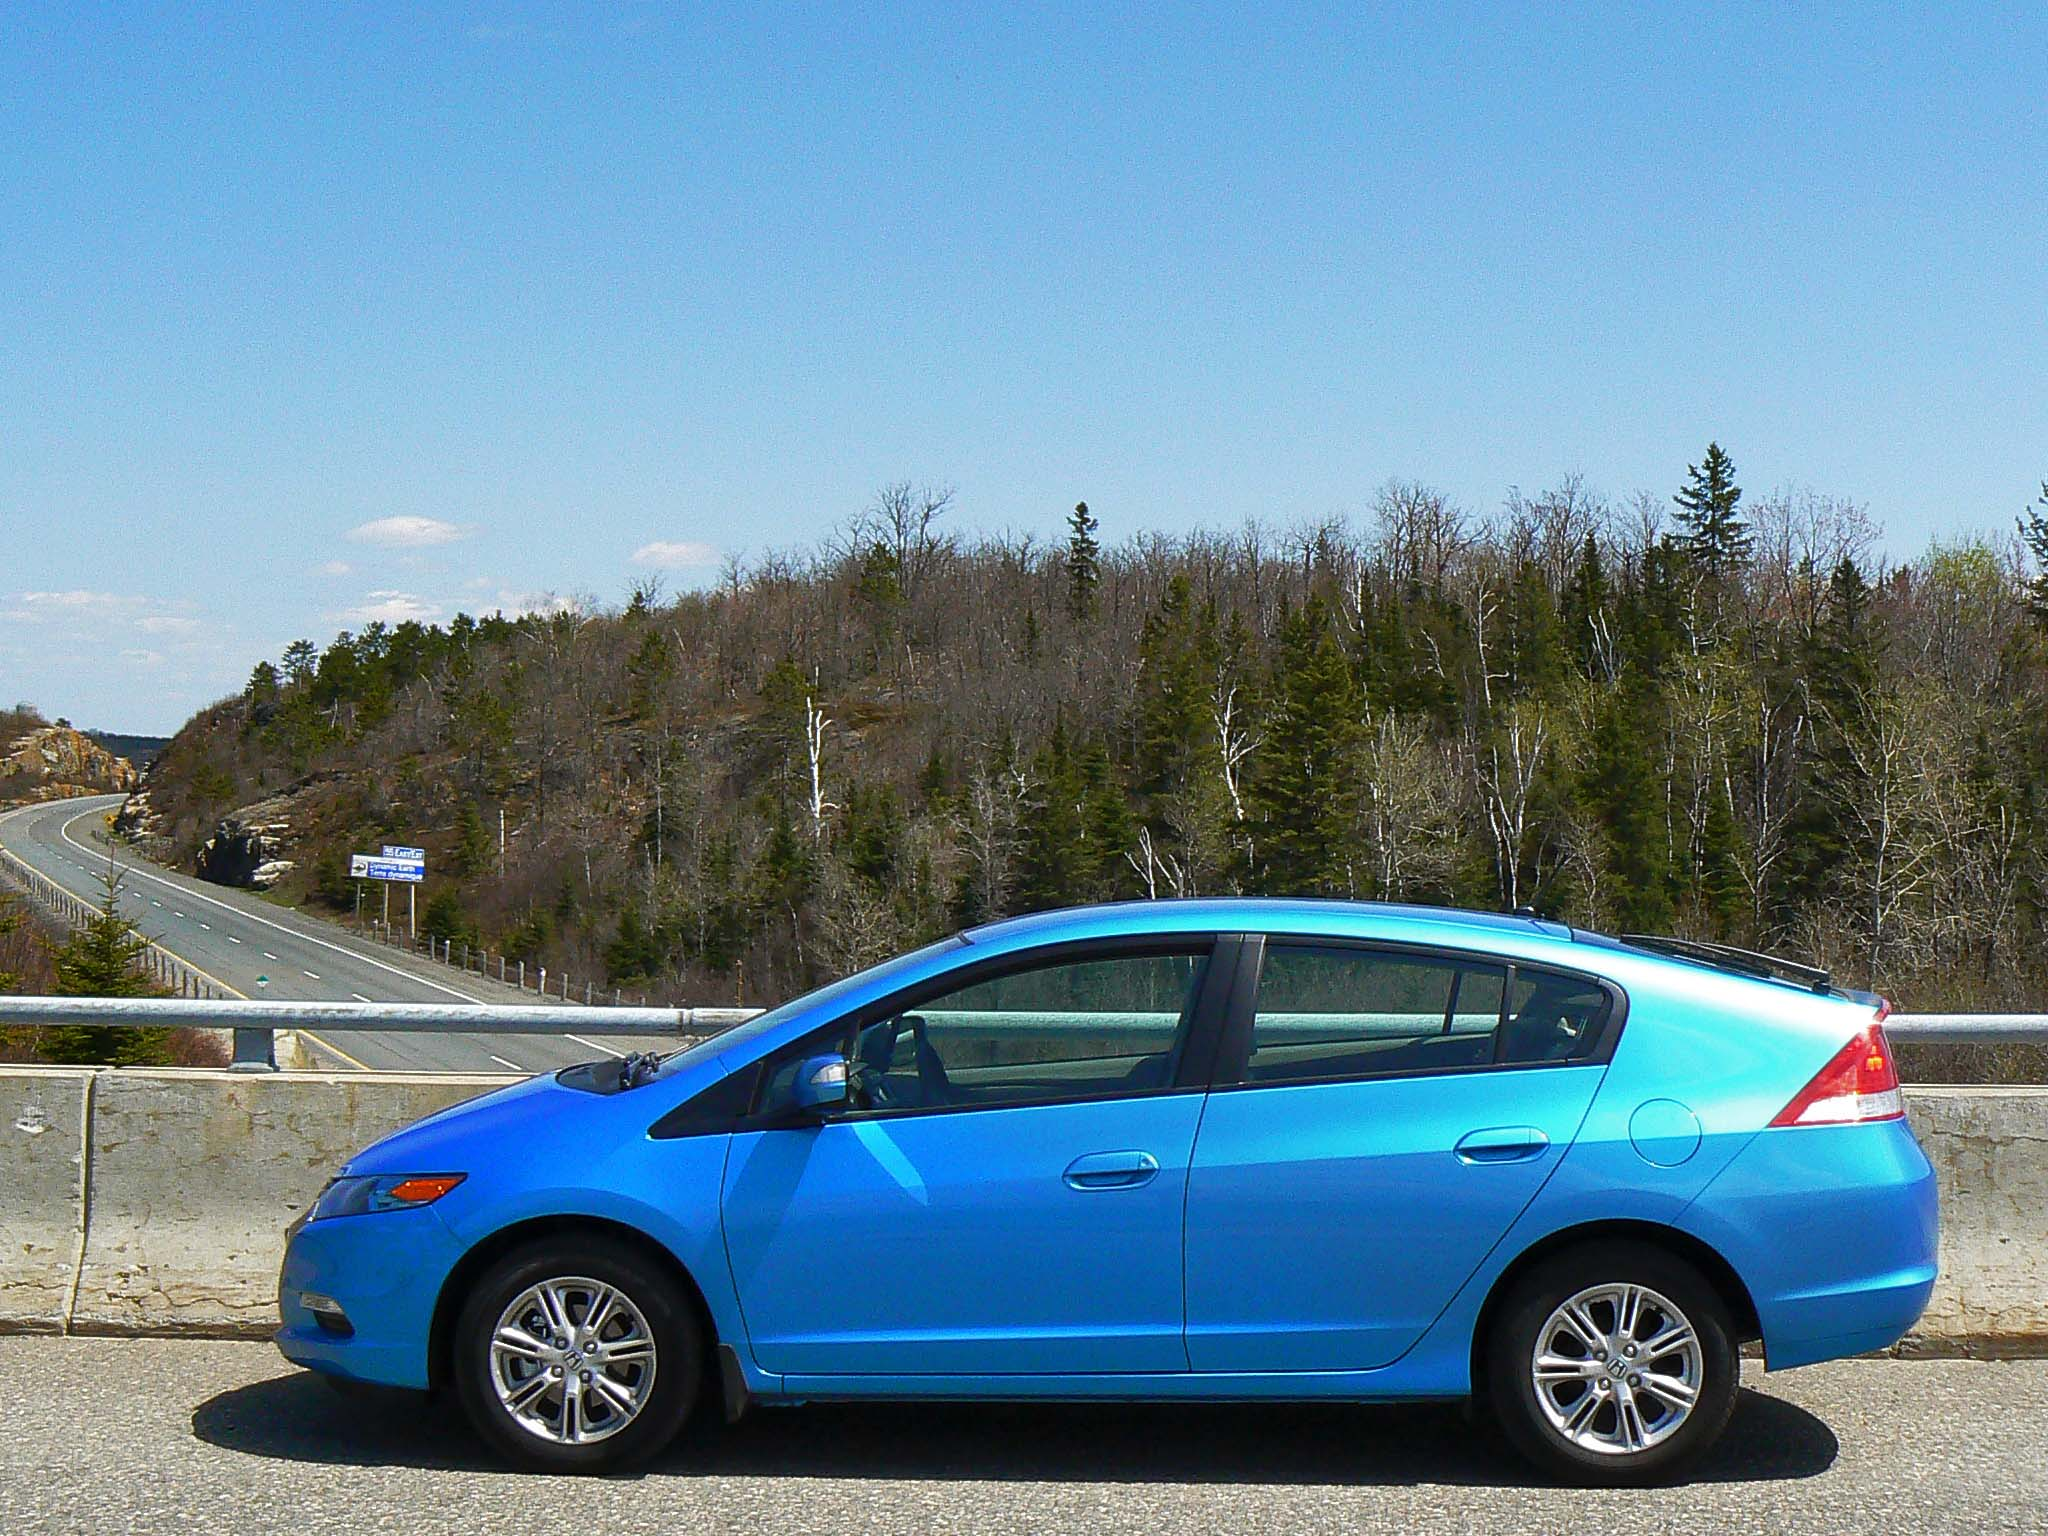 Beautiful Used Vehicle Review: Honda Insight, 2010 2012